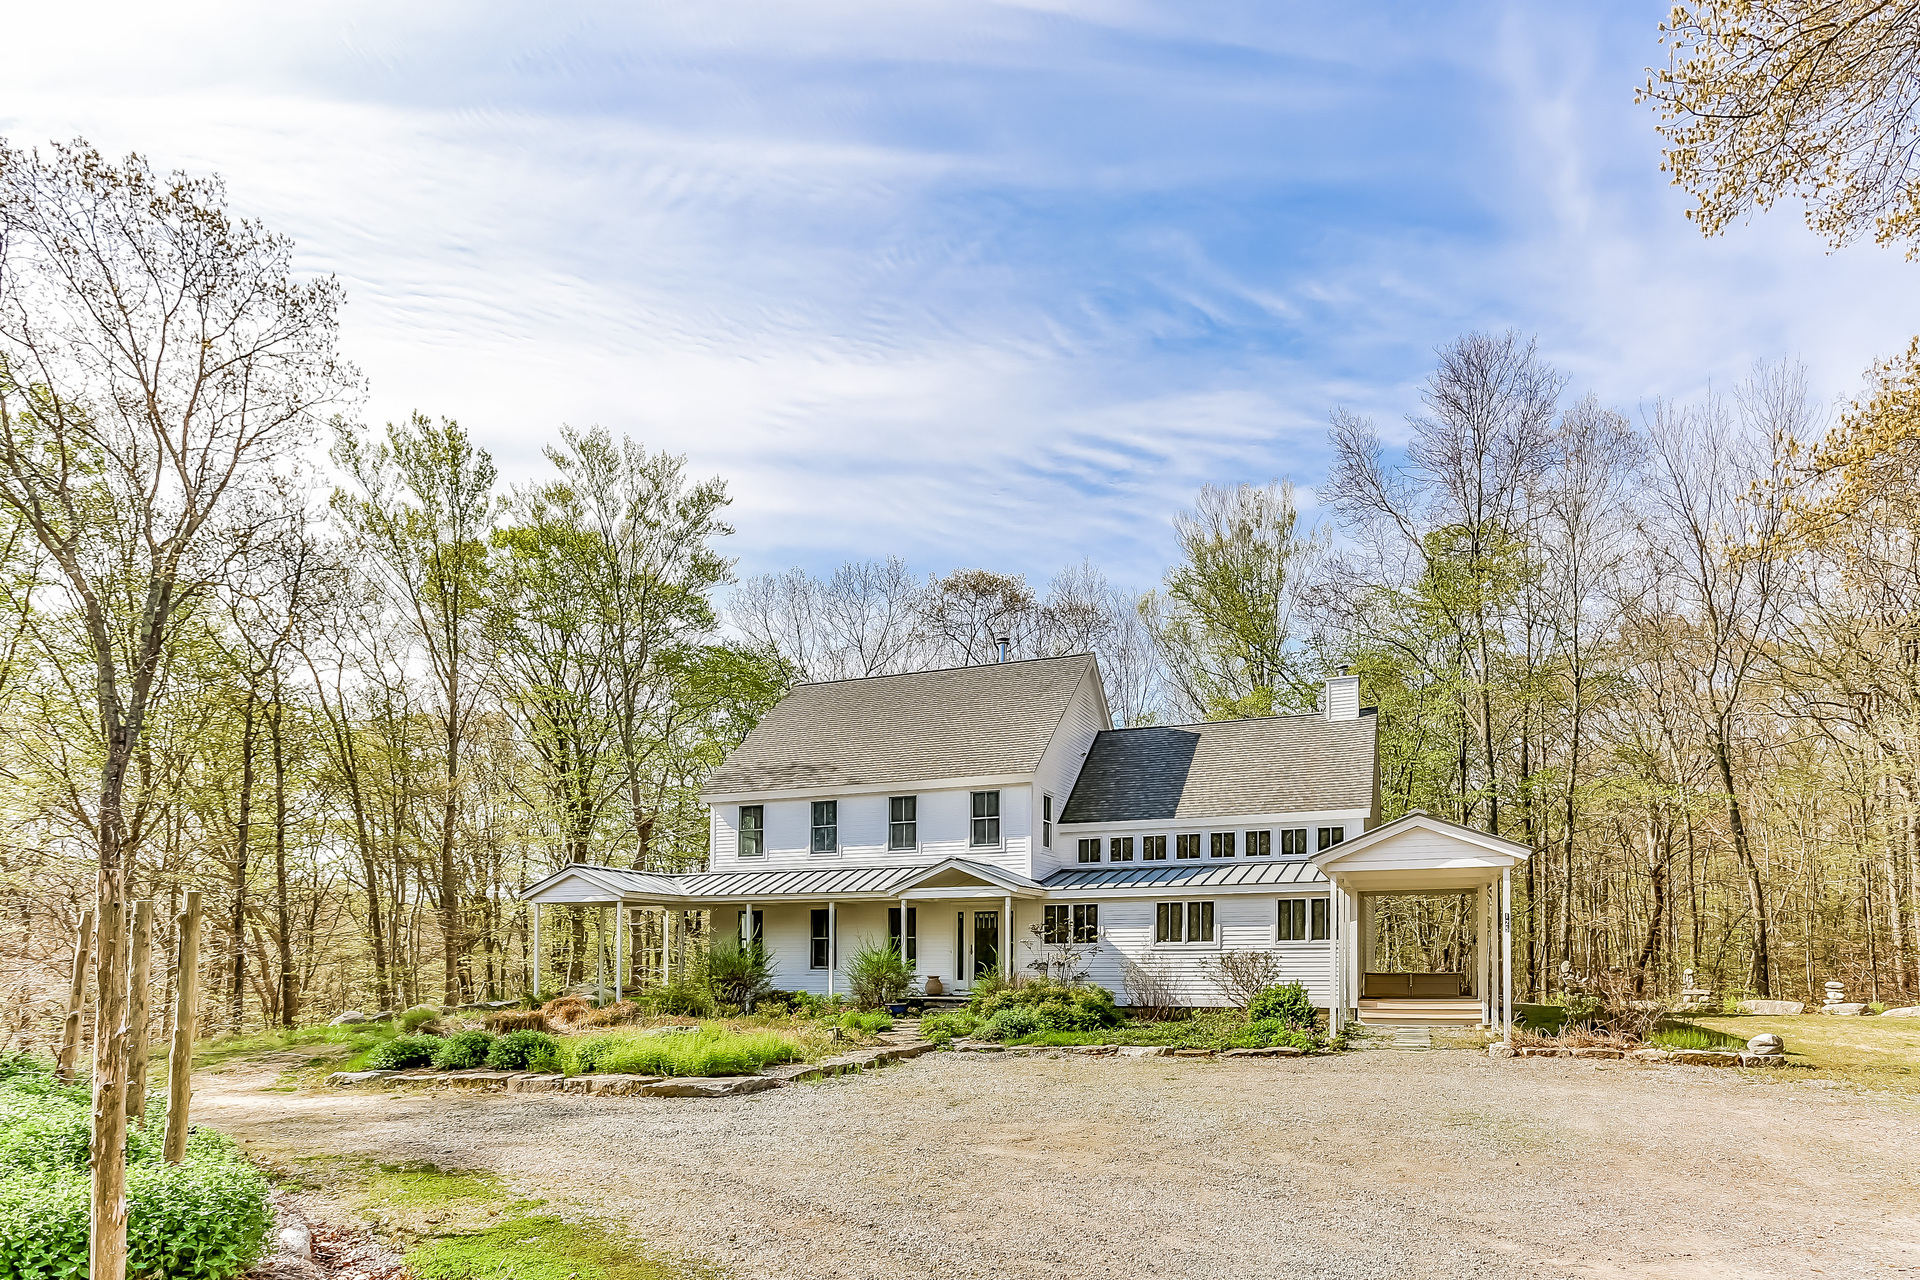 Single Family Home for Sale at Custom built home designed to blend the natural landscape with state of the art 125 Fishtown Road Groton, Connecticut 06355 United States